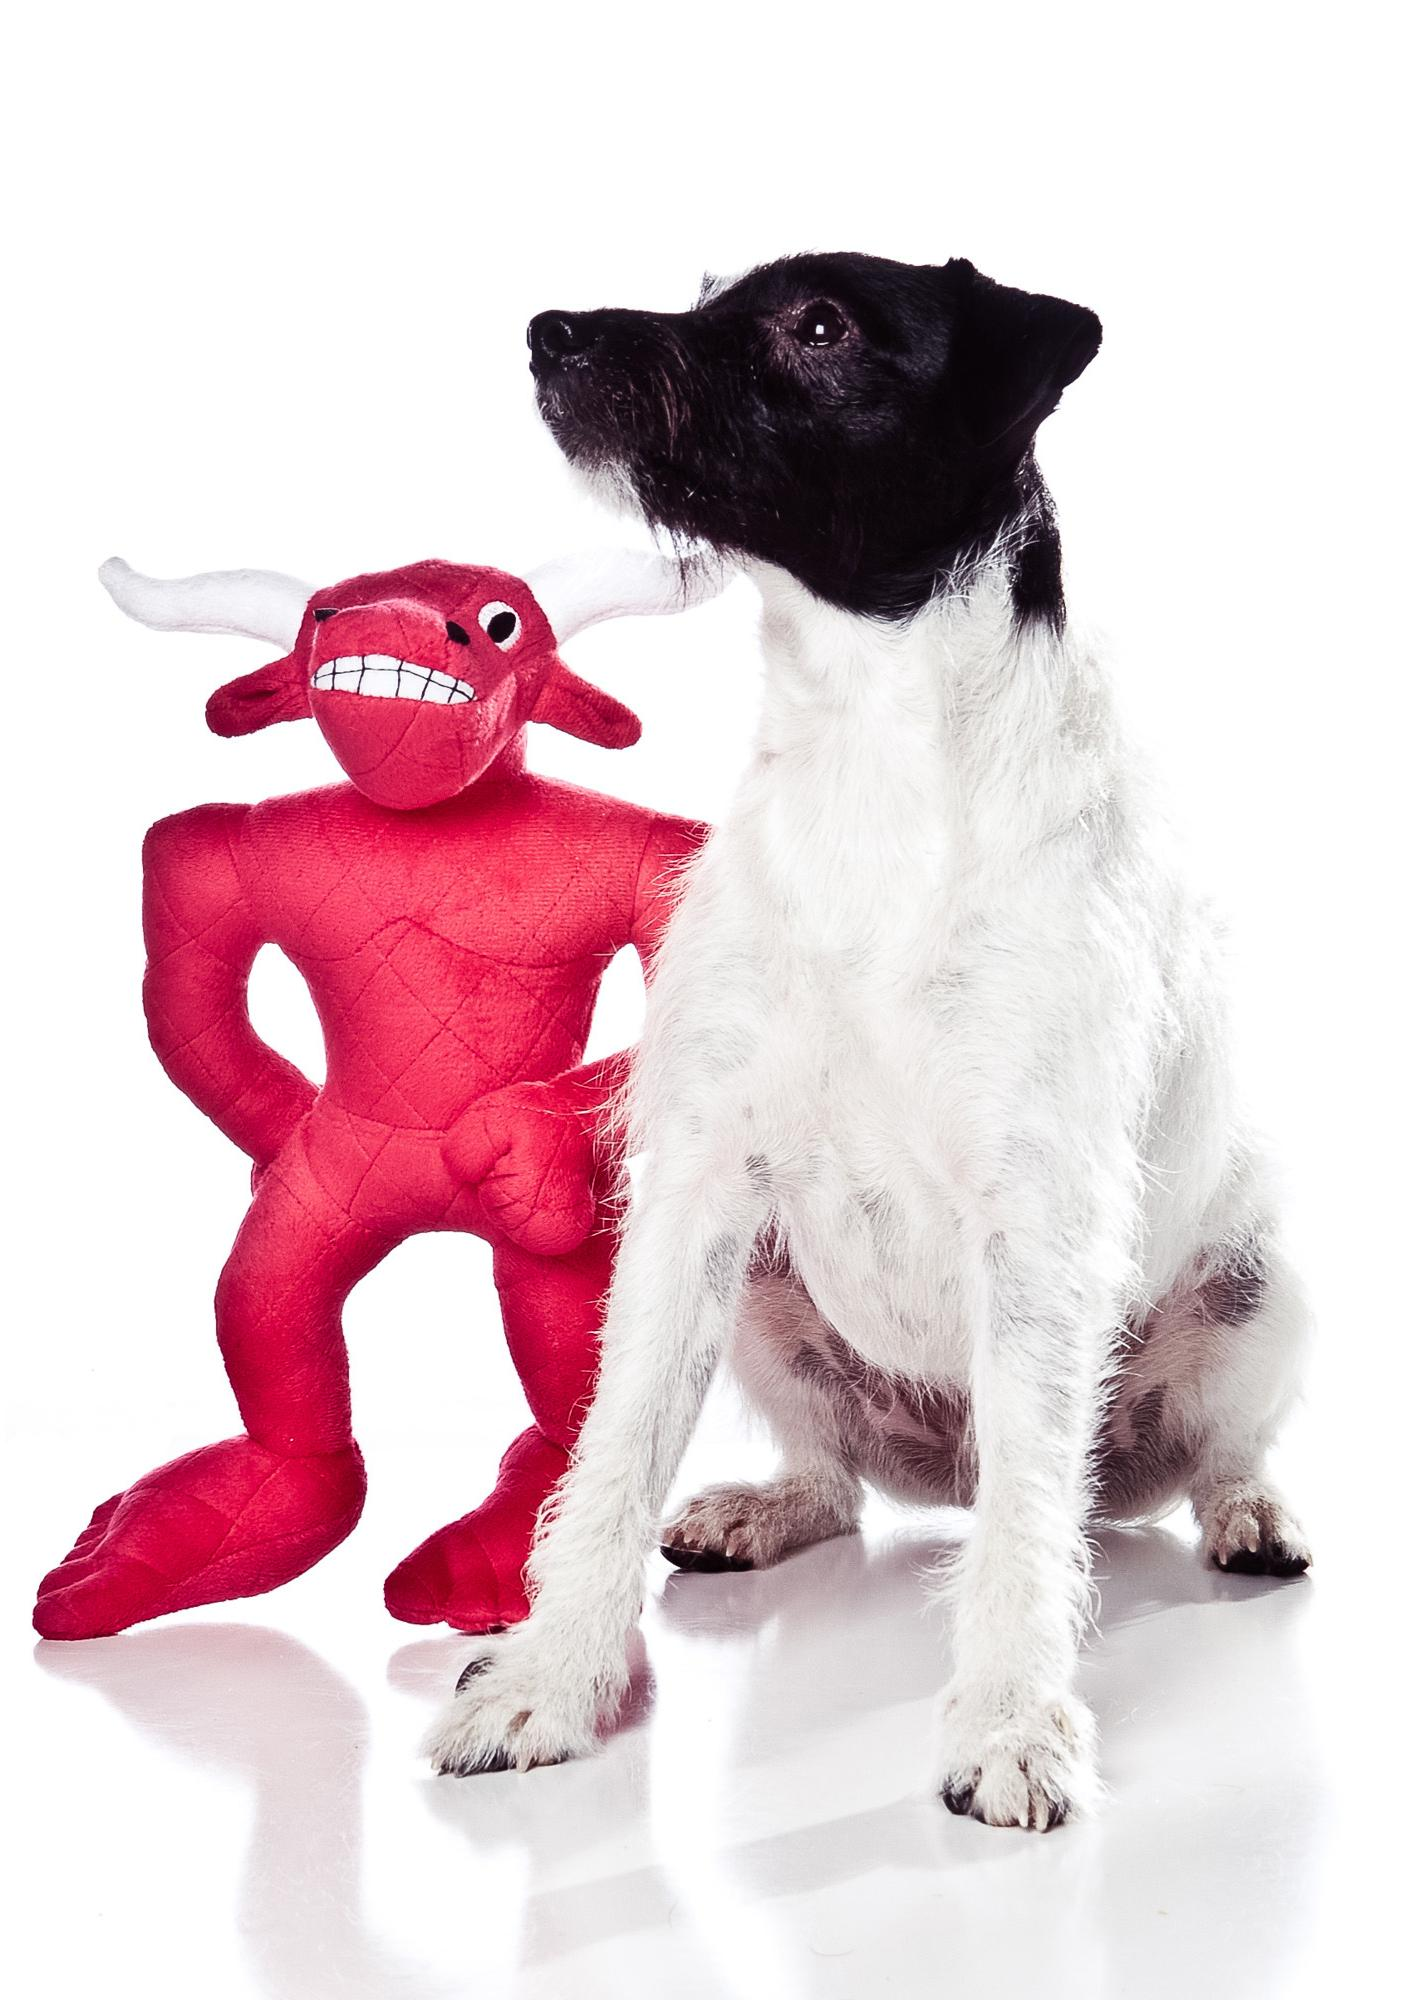 Minny Minotaur Mighty Dog Toy